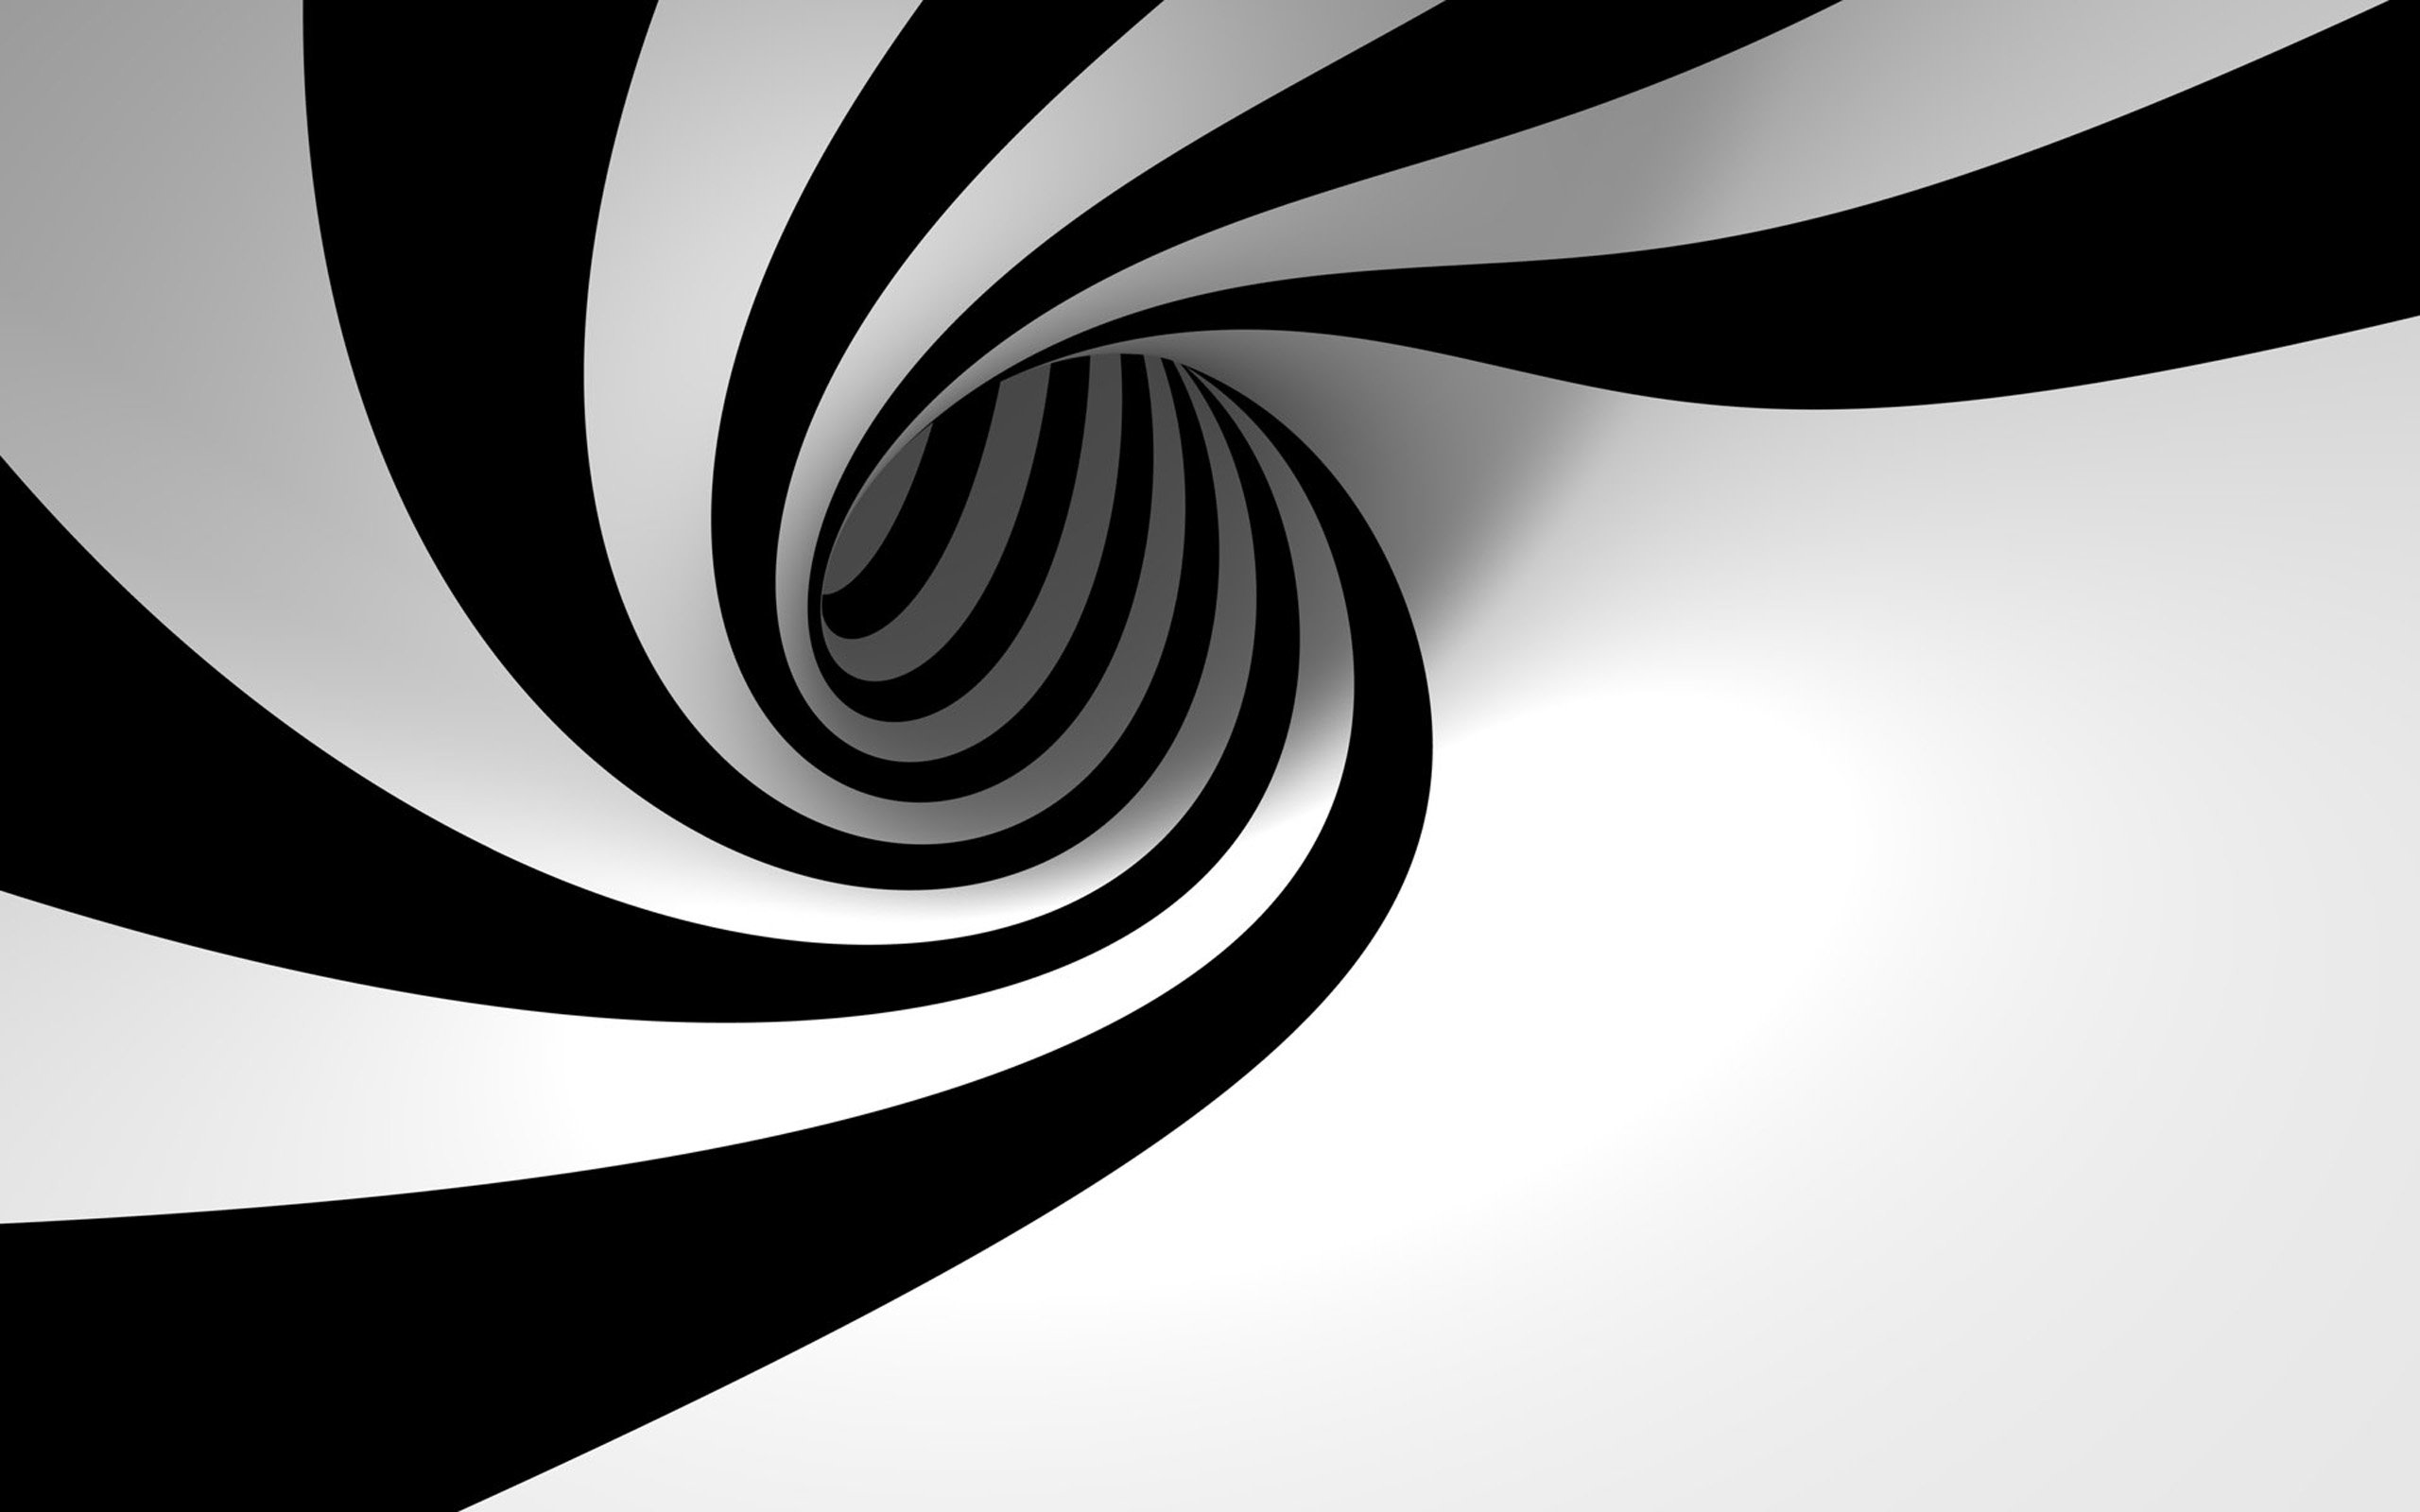 Download for free an abstract black and white wallpaper / background ...